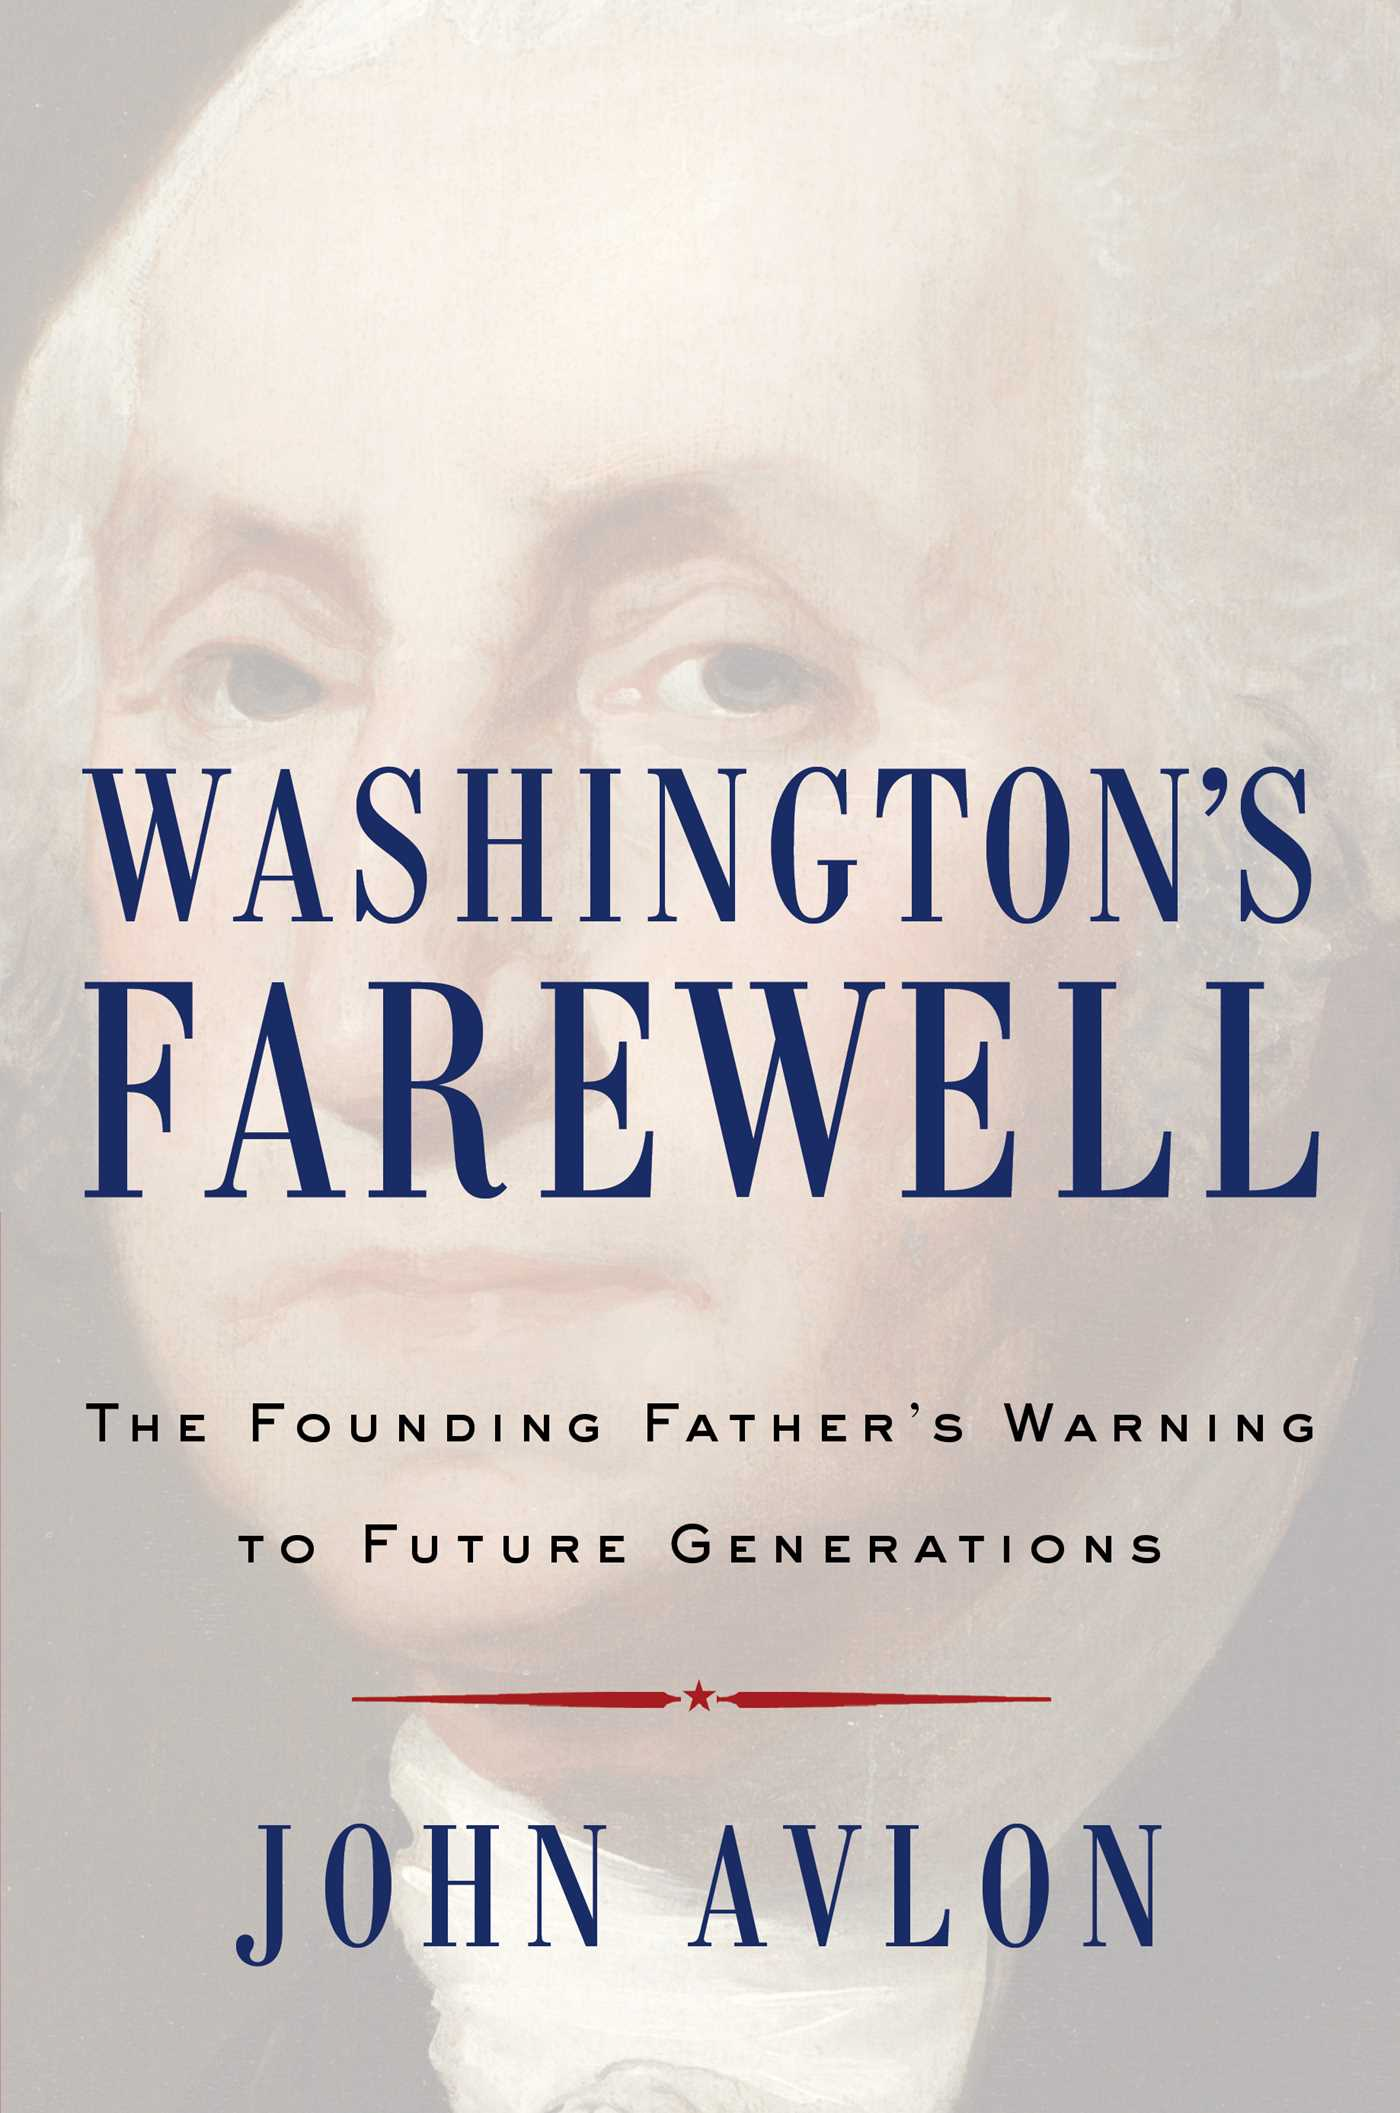 Washingtons farewell 9781476746463 hr